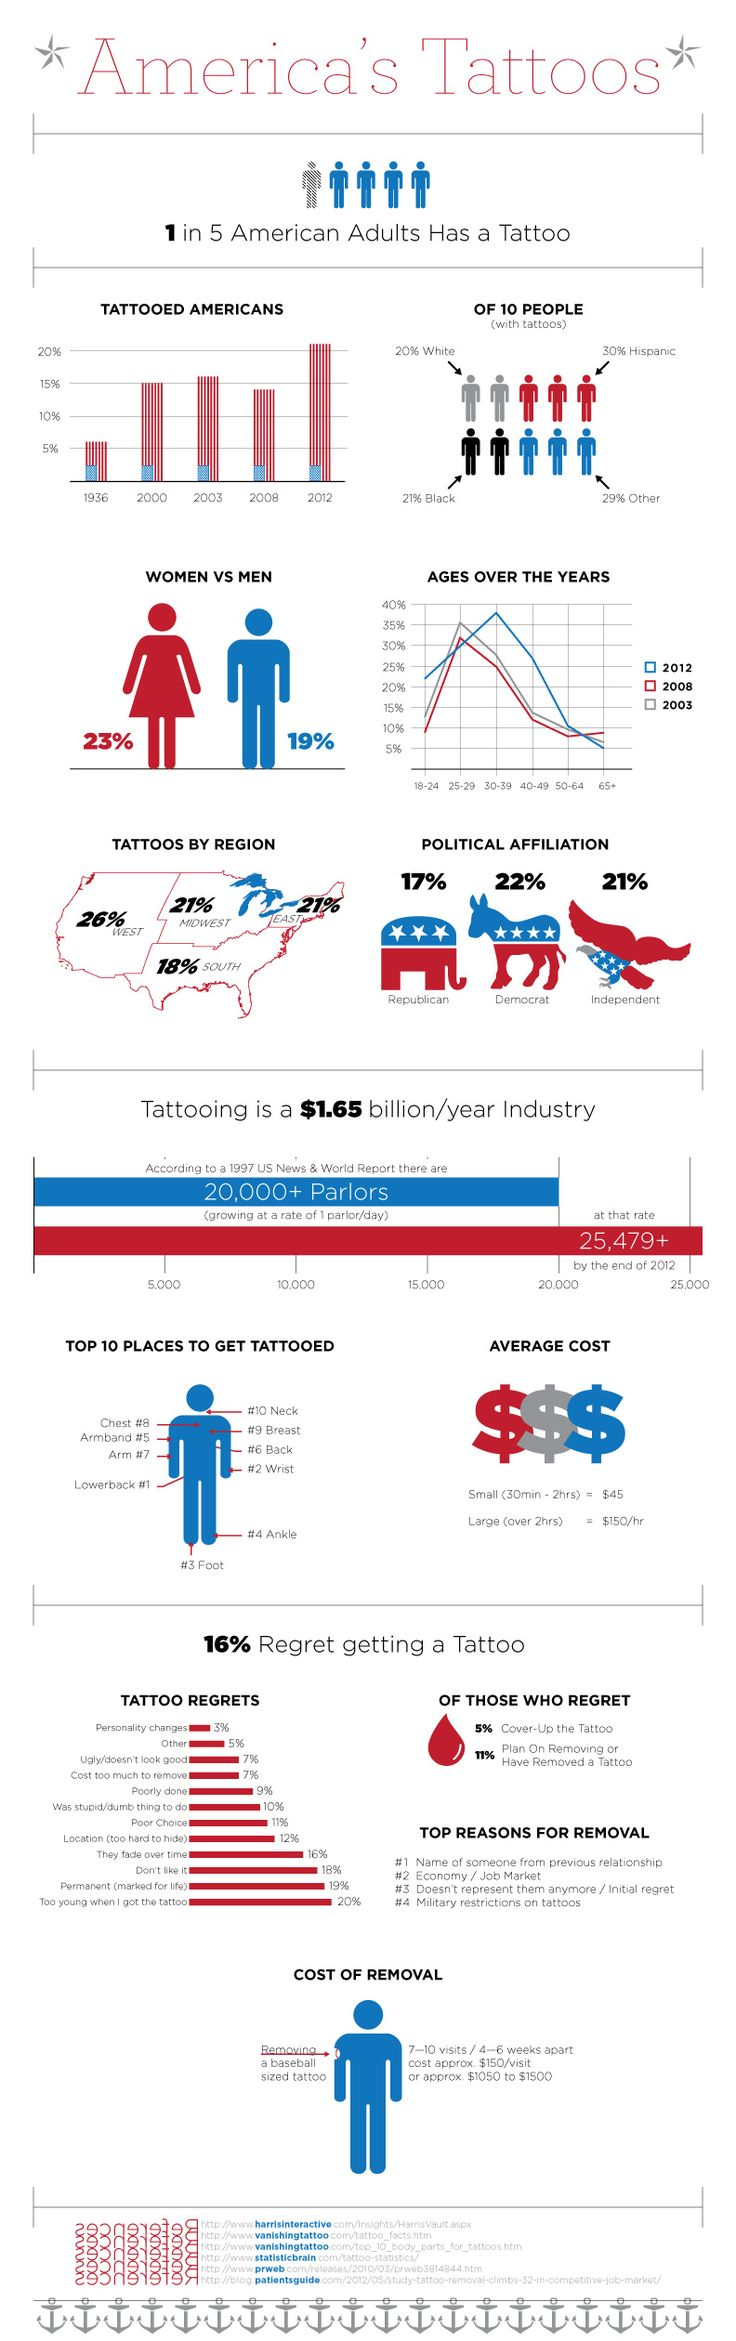 This infographic represents Tattooing in America. From, it's growth, who gets tattoos and where as well as how much they cost to get and to get remove